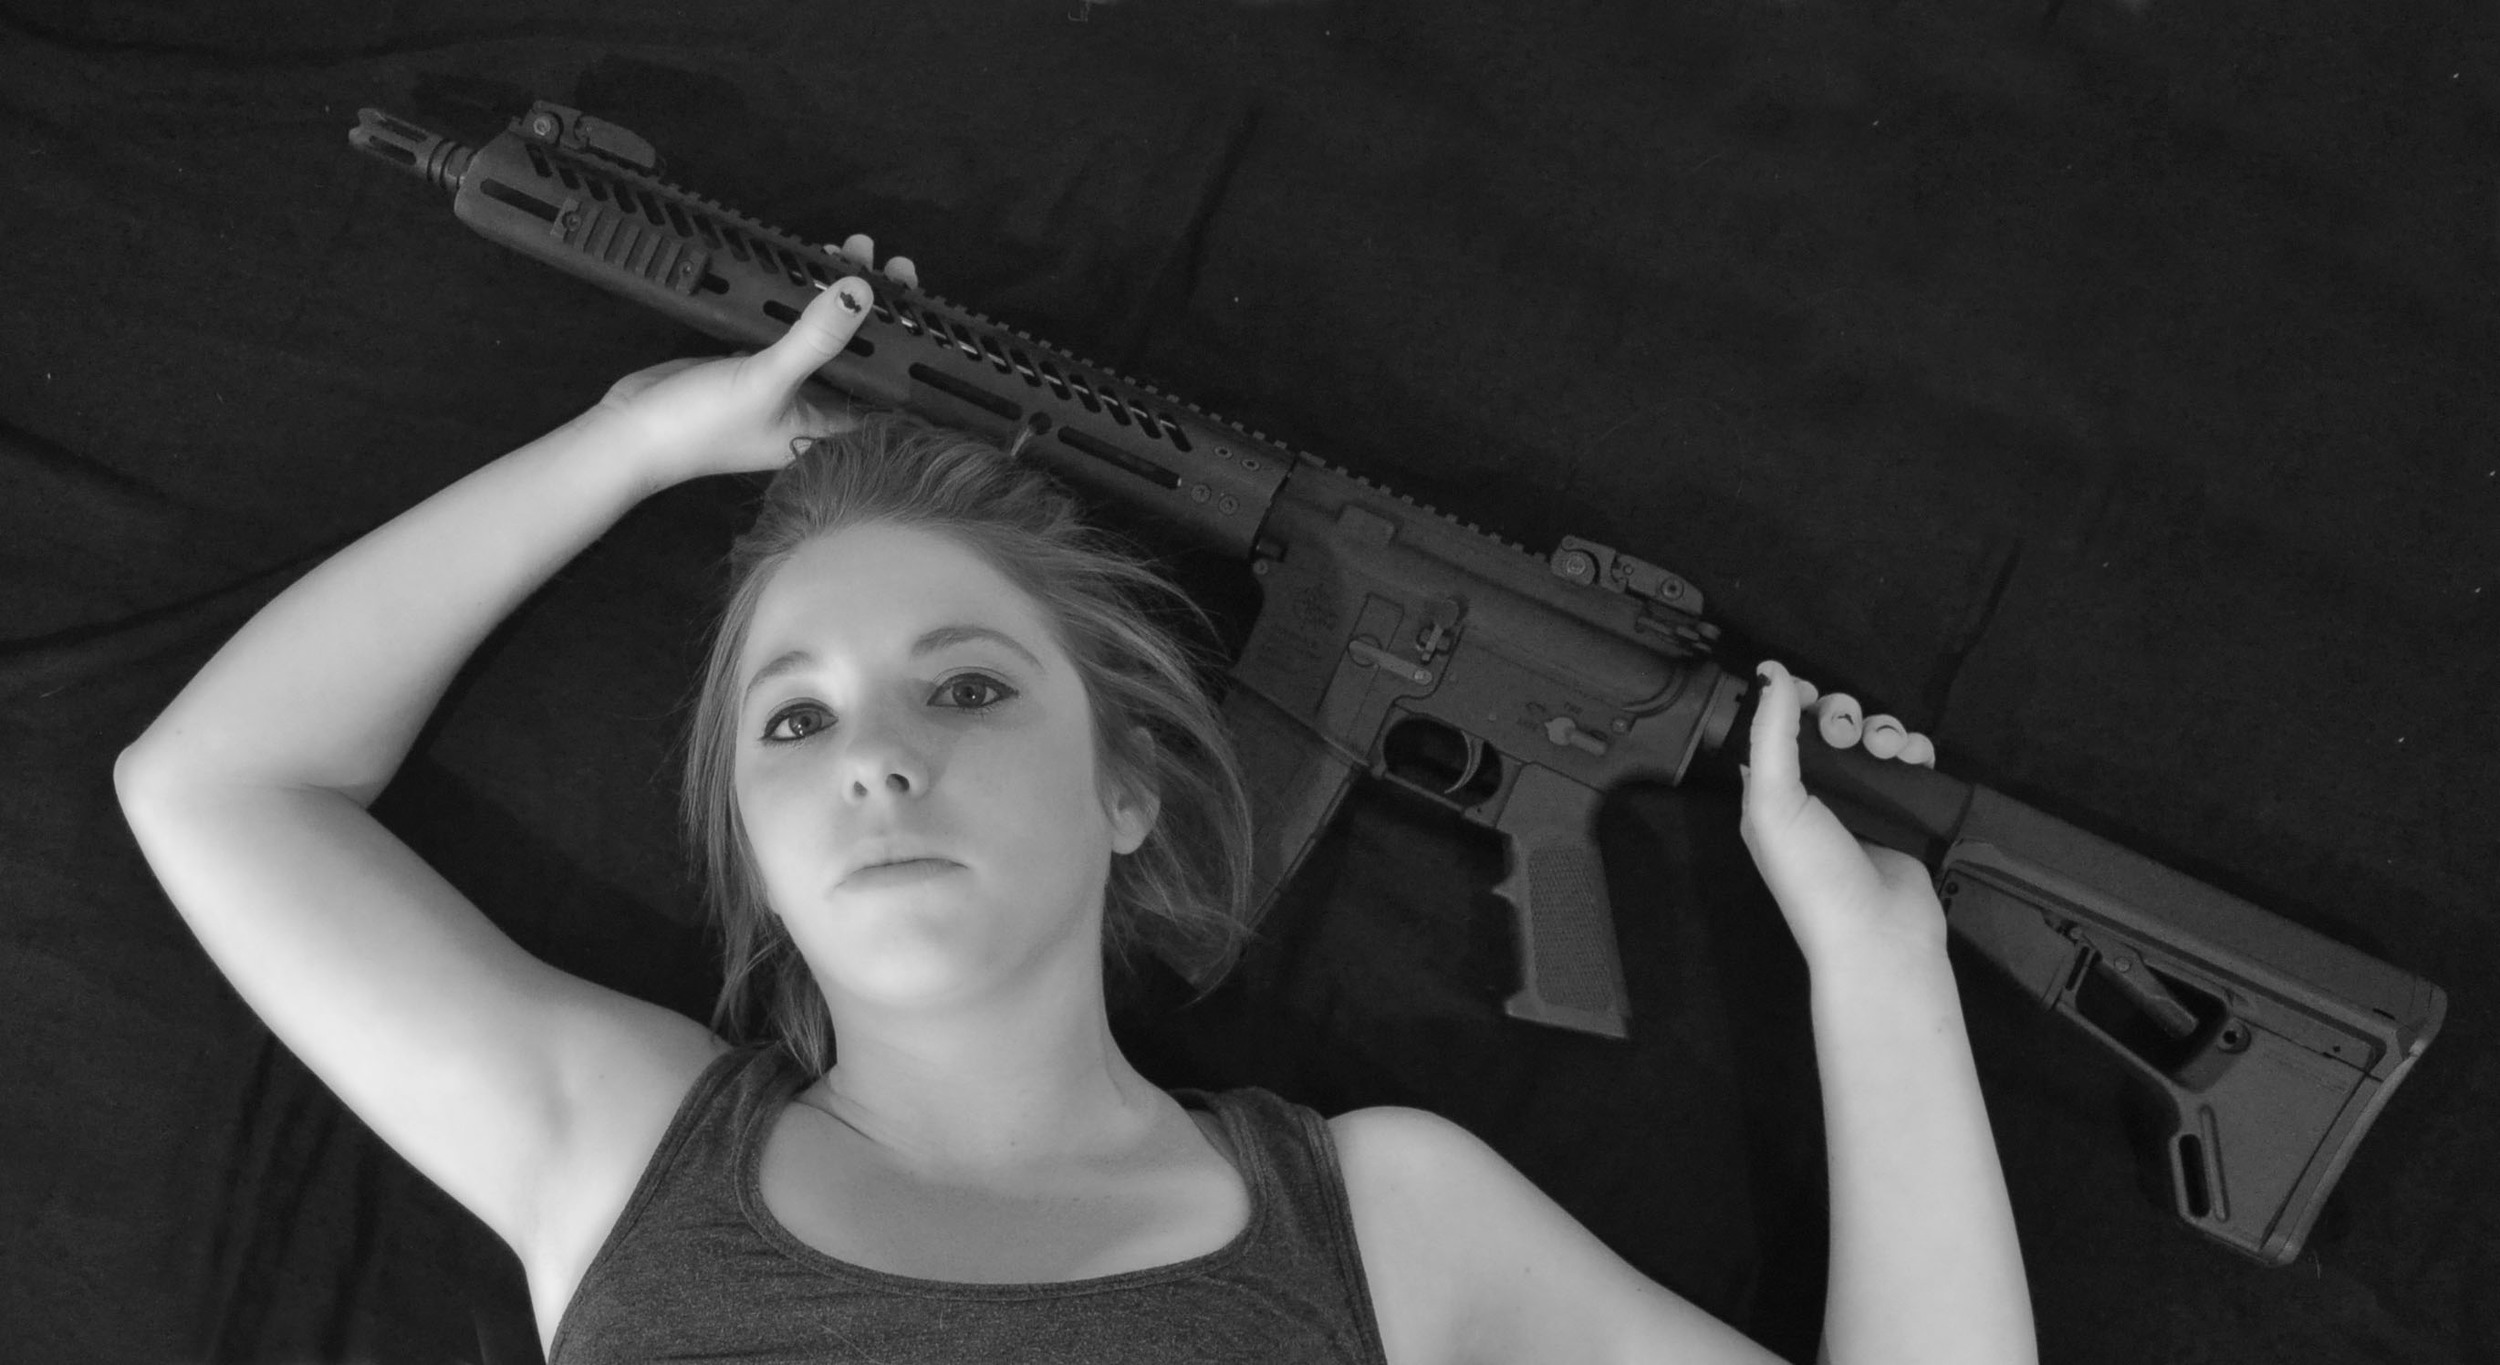 I have included an image of myself. Pictured here is an AR 15 that my husband built. I was asked why this is empowering to me. I have to answer by saying that there is something about standing face on to a target lifting the sights to my eye taking aim and pulling the trigger. The challenge of hitting in the proper place and the ability to look back to a smiling husband. This is only one of many things that make me feel empowered.